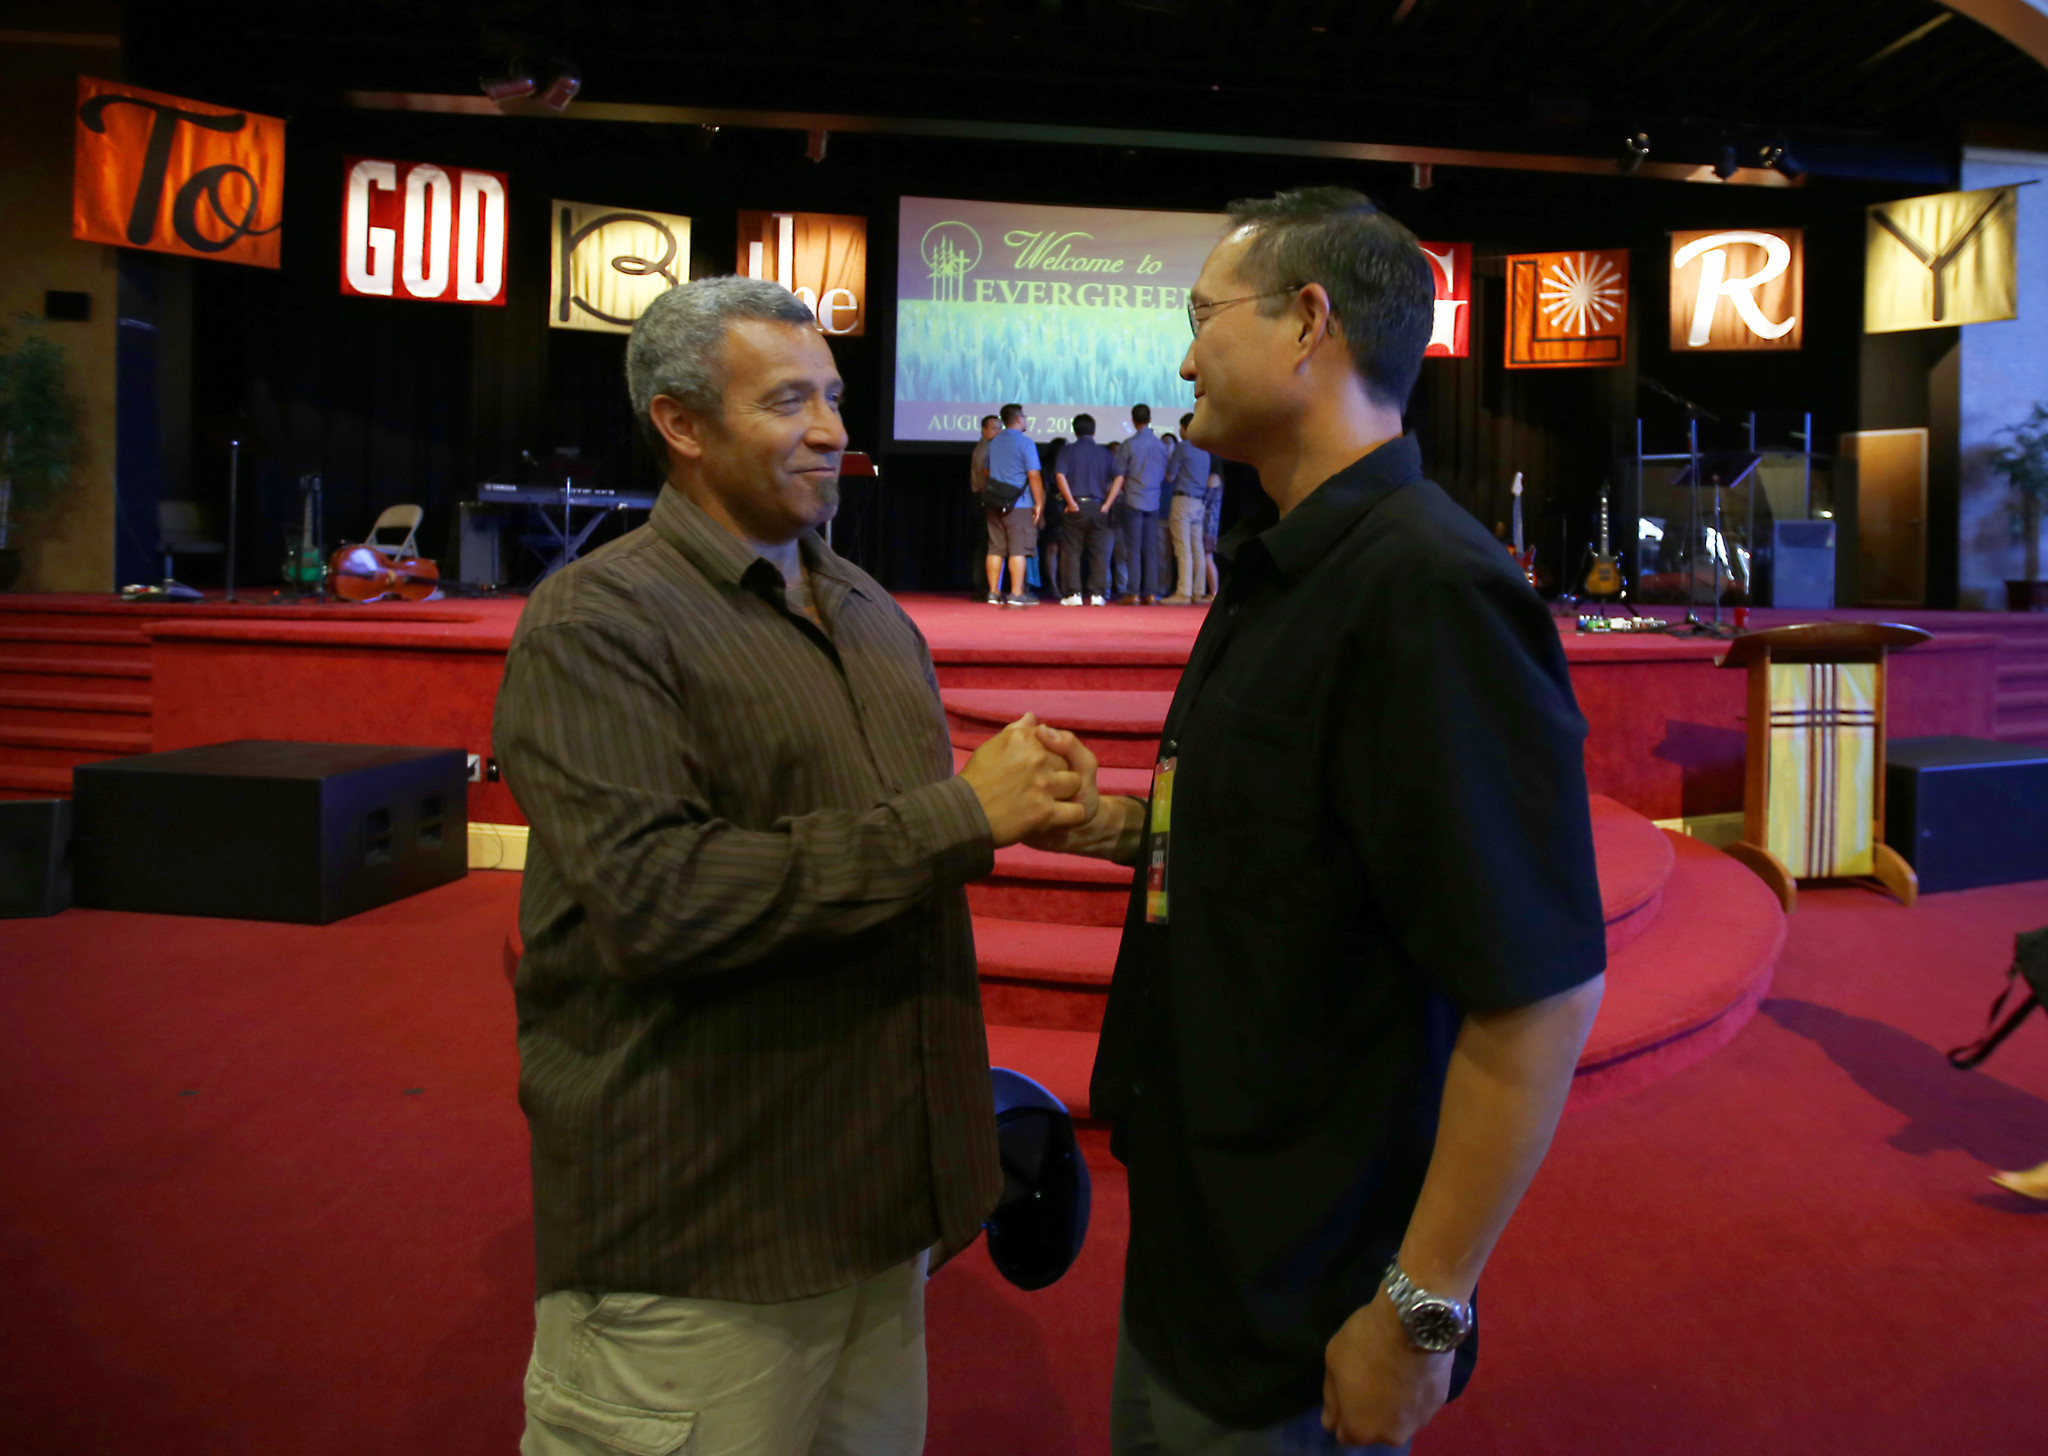 Sal Reynoso, 52, greets Pastor Rocky Seto following Sunday morning service at Evergreen SGV Baptist Church in La Puente.